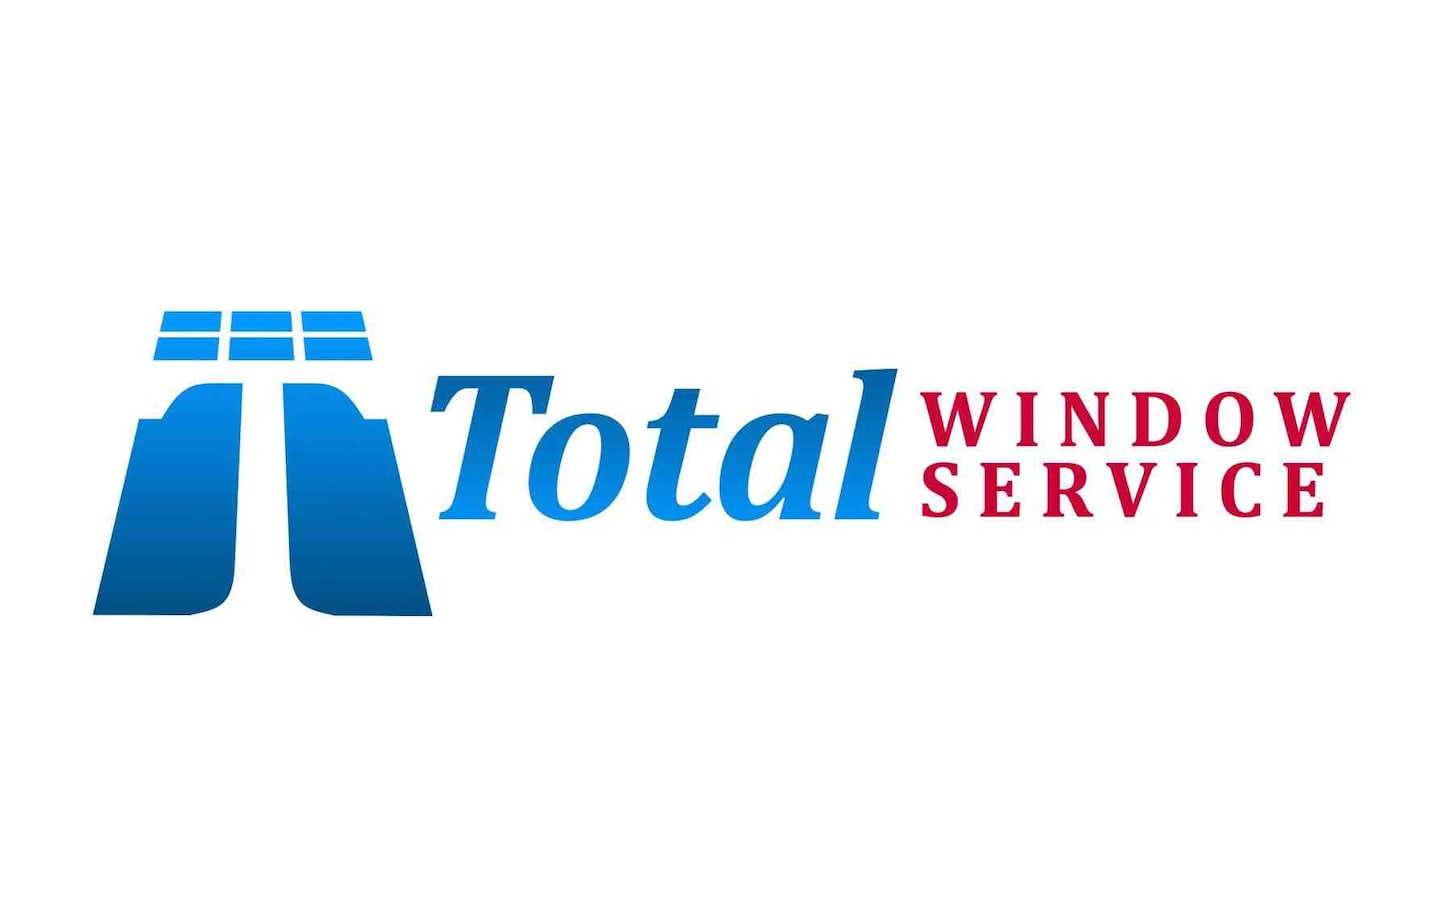 Total Window Service